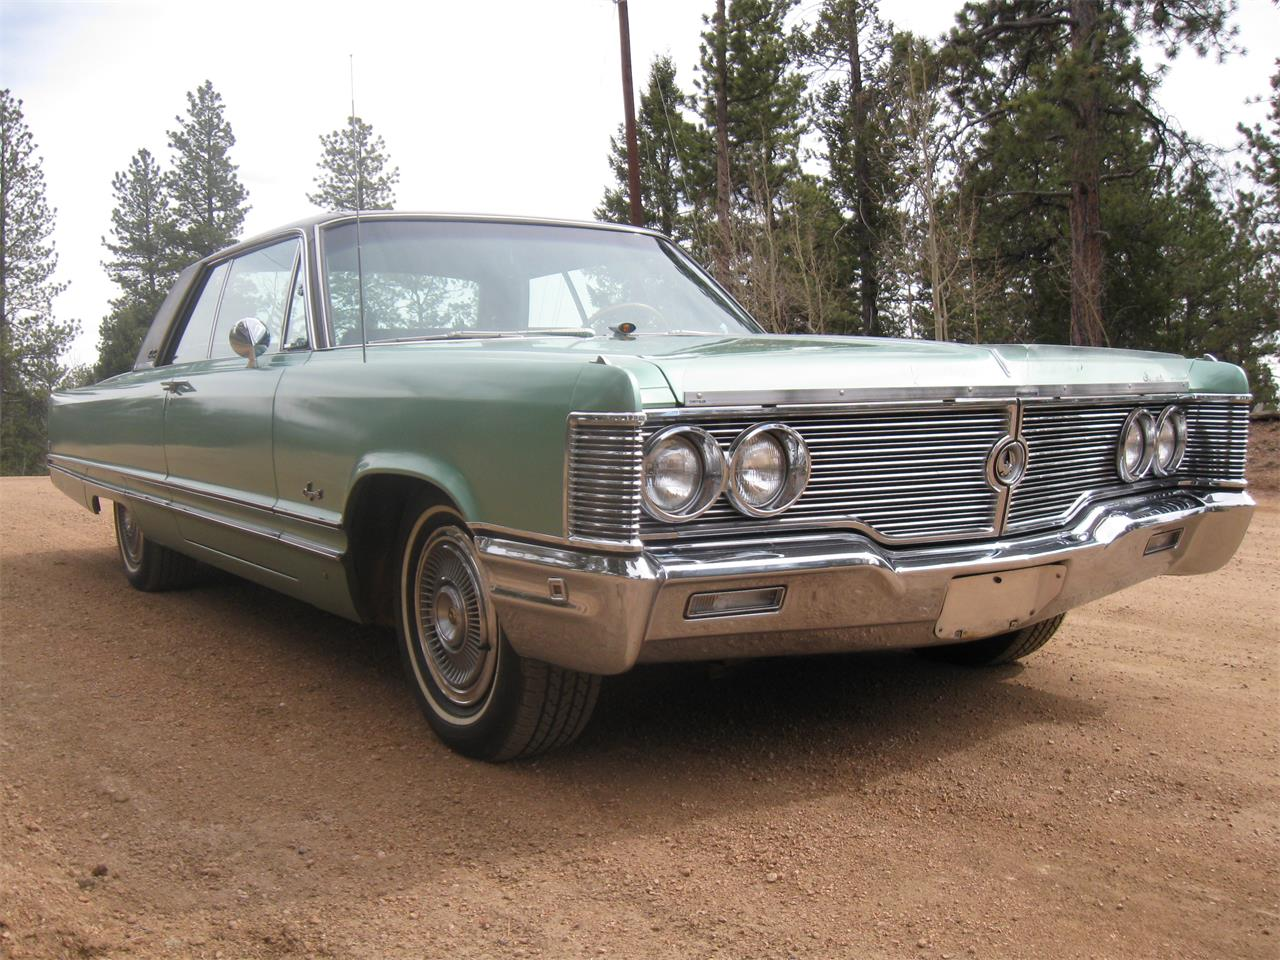 1968 Chrysler Imperial Crown (CC-1412317) for sale in Divide, Colorado